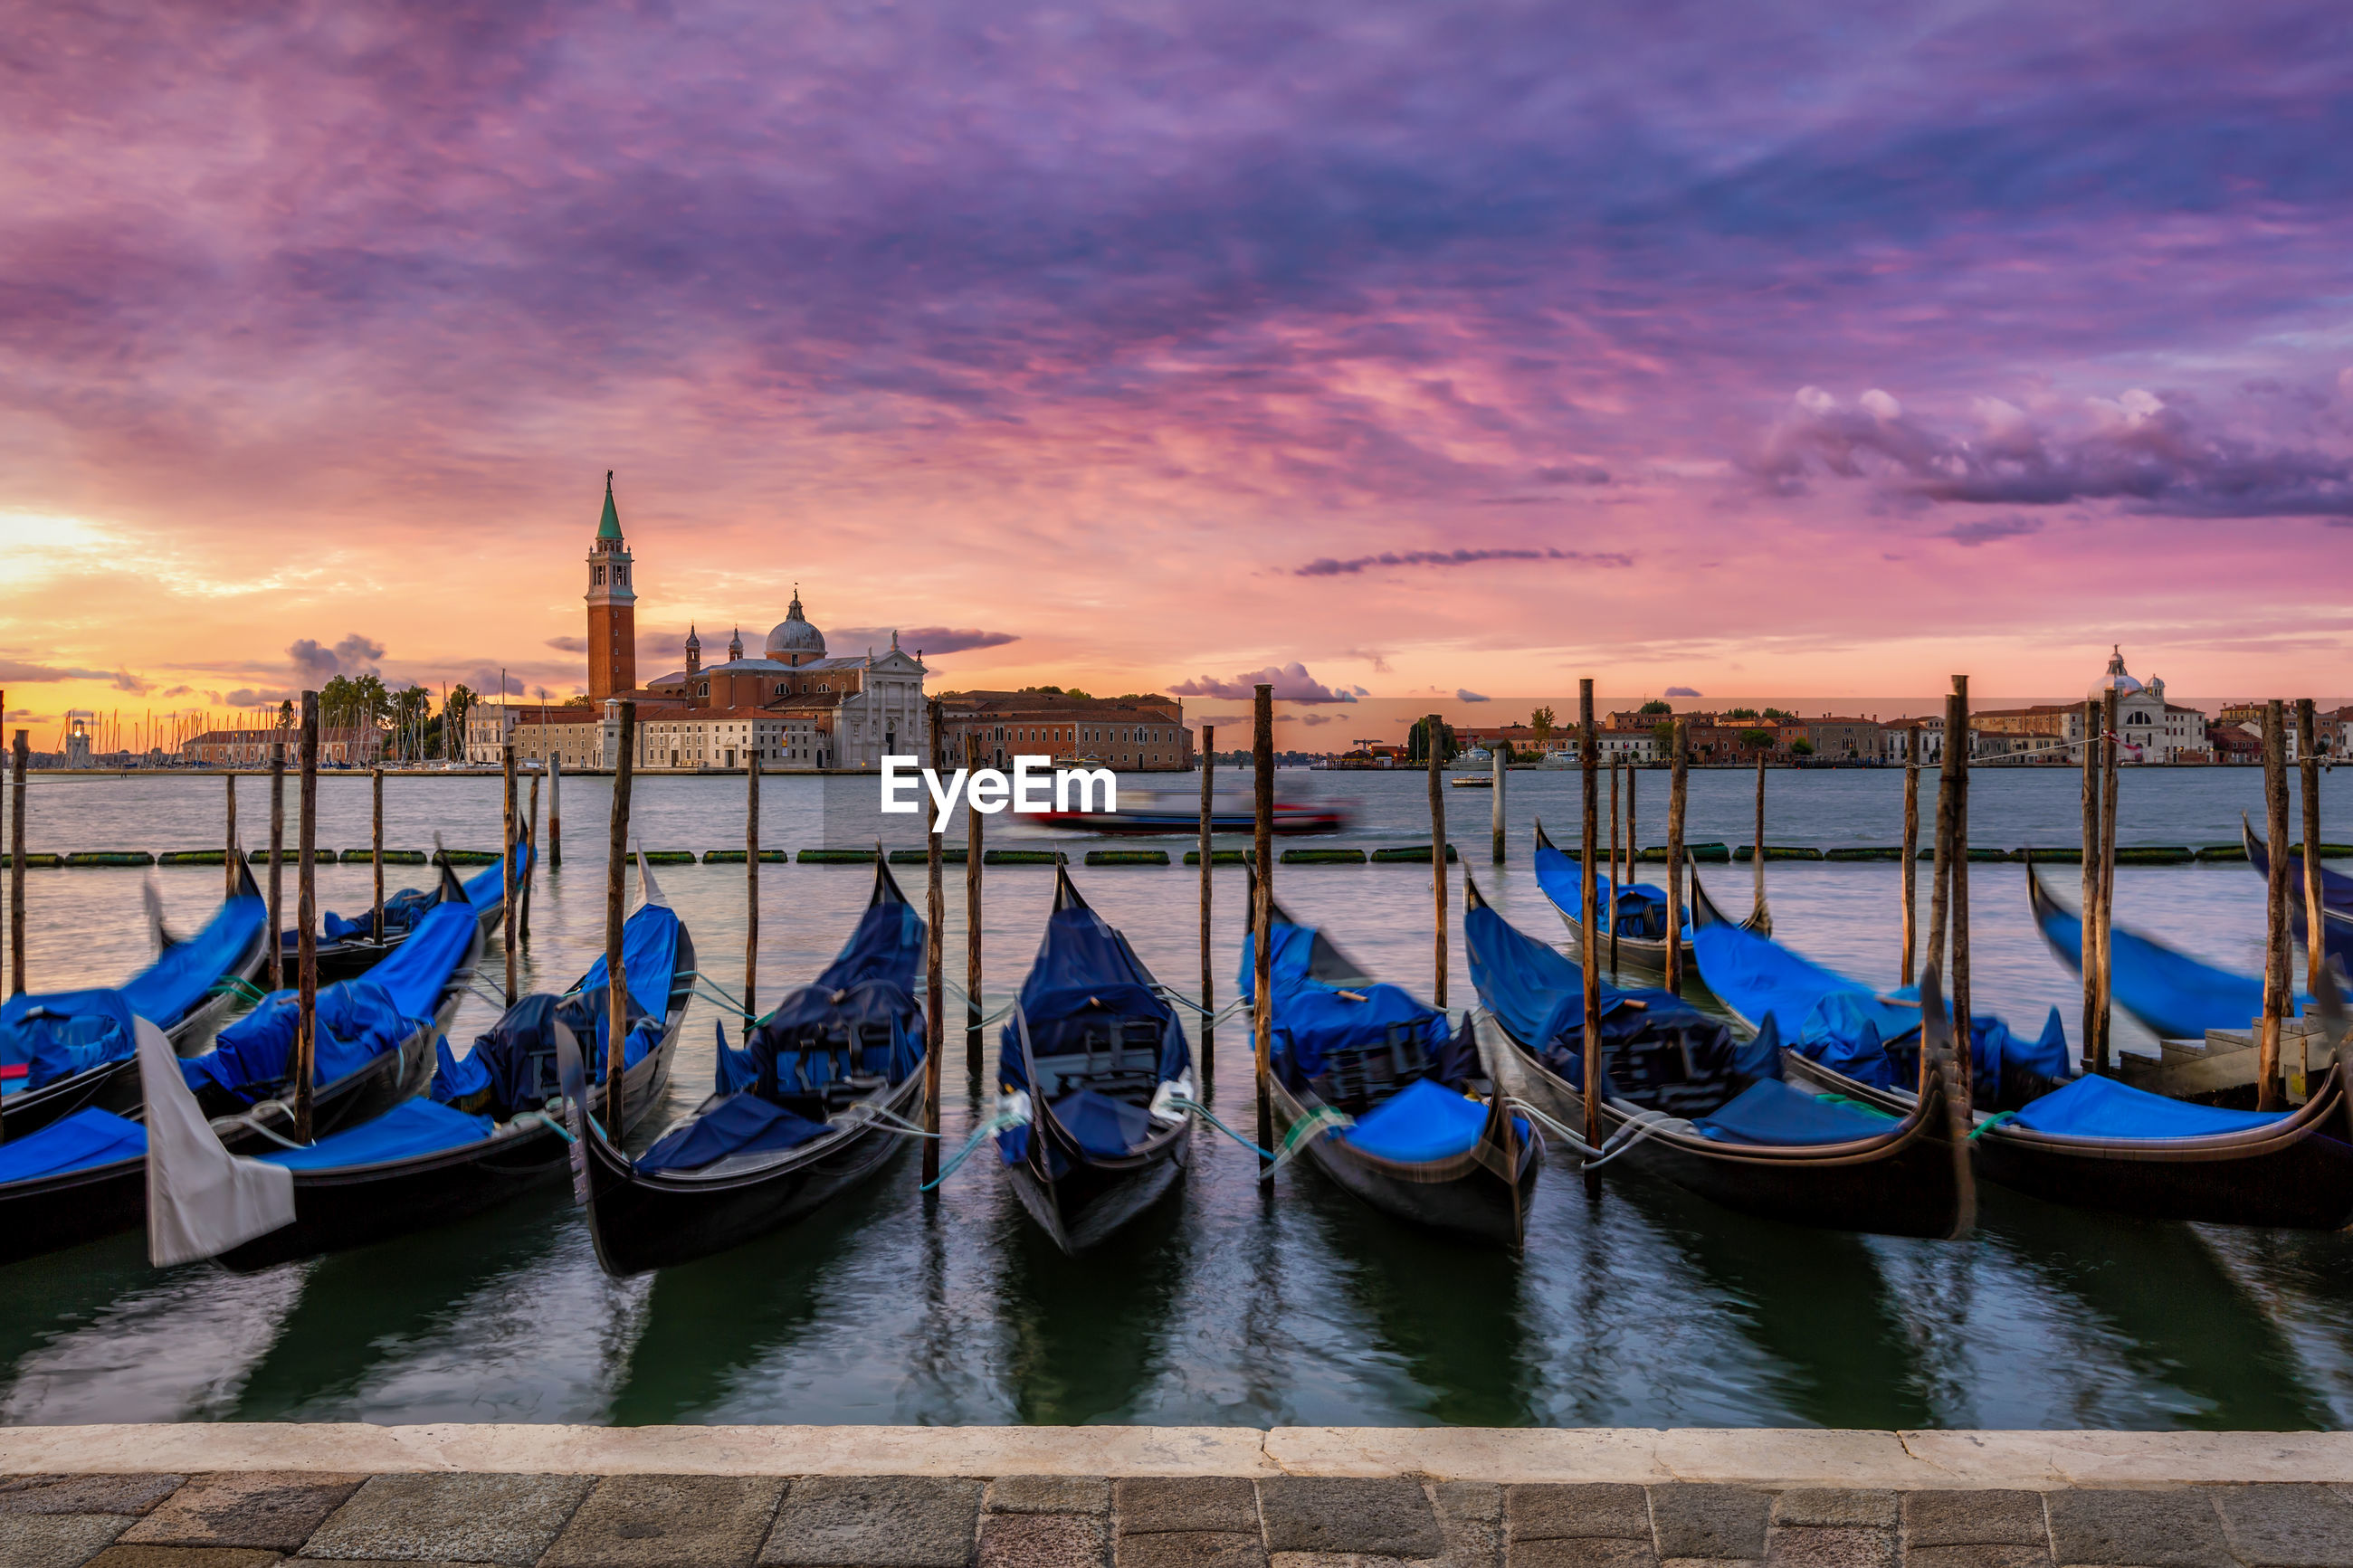 View of boats moored in city at sunset